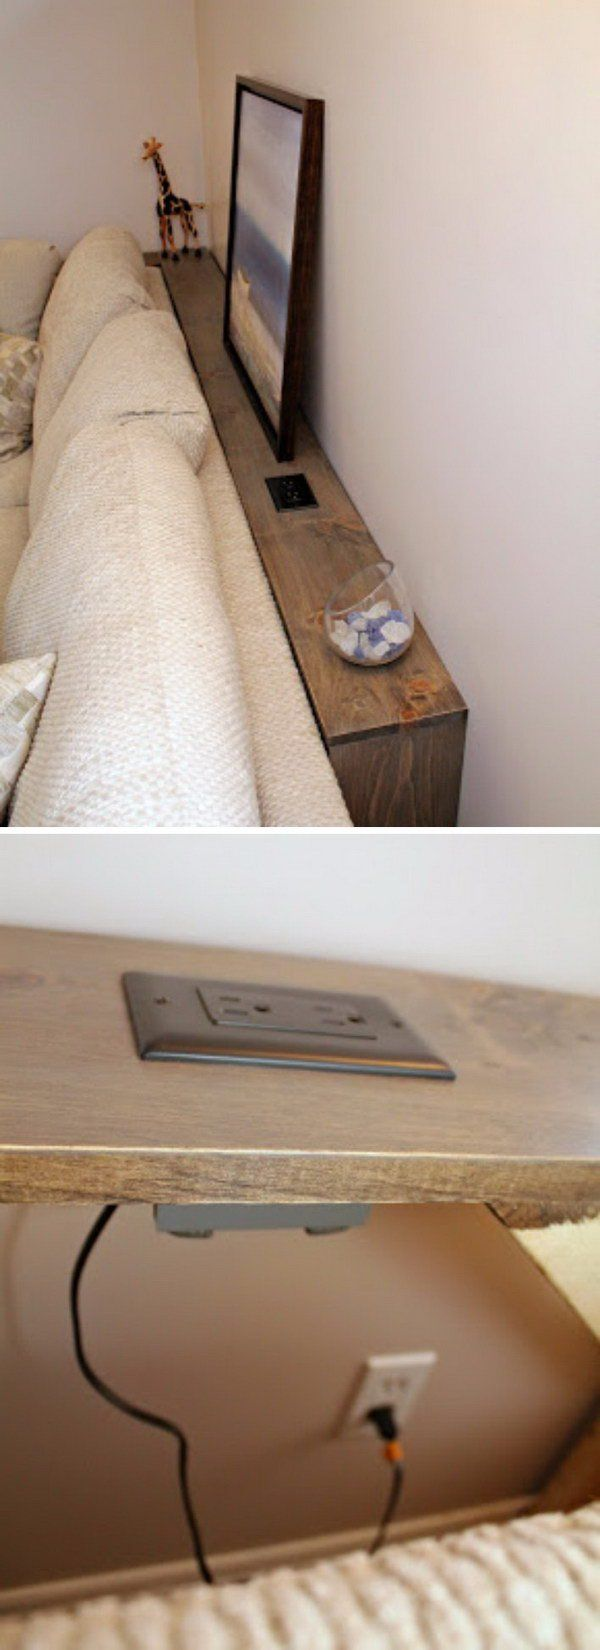 20 Great Ways To Make Use Of The Space Behind Couch For Extra Storage And  Visual Depth. Diy Sofa TableDiy ...